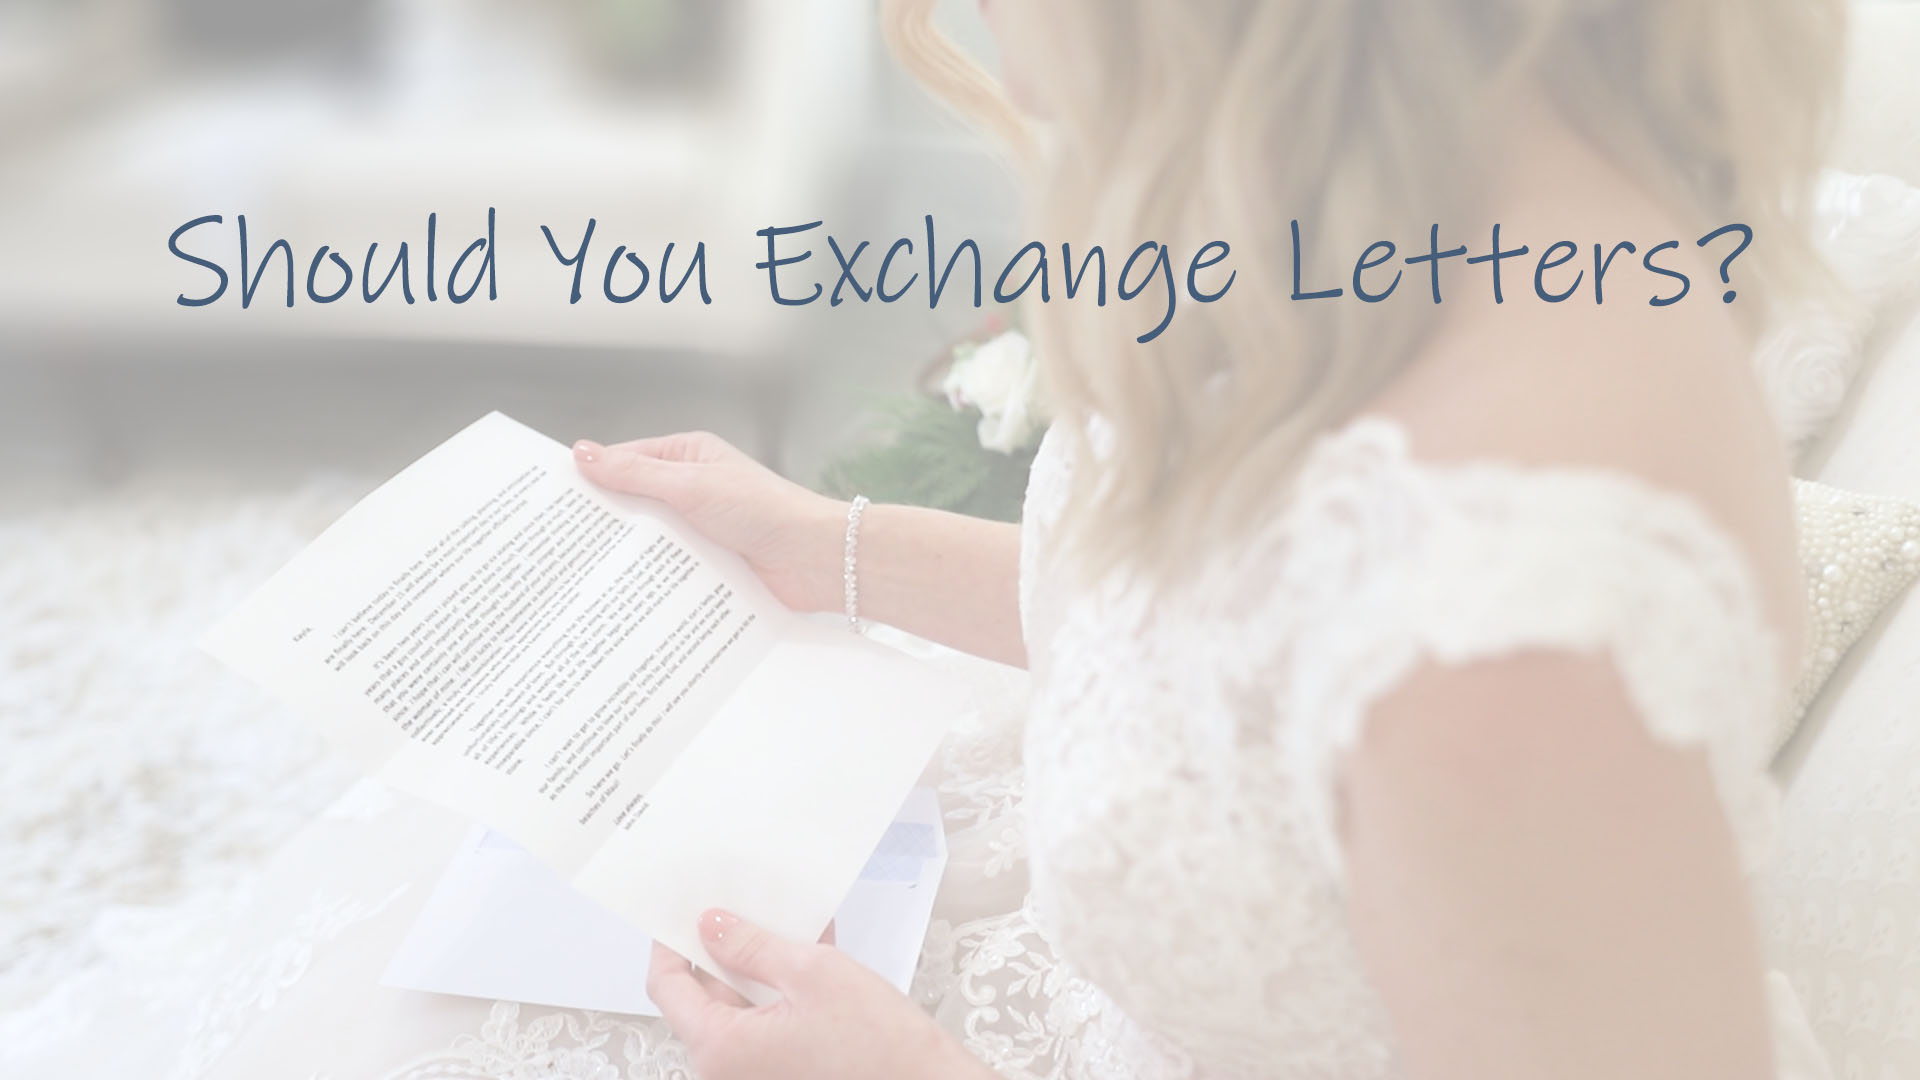 Exchange Letters?